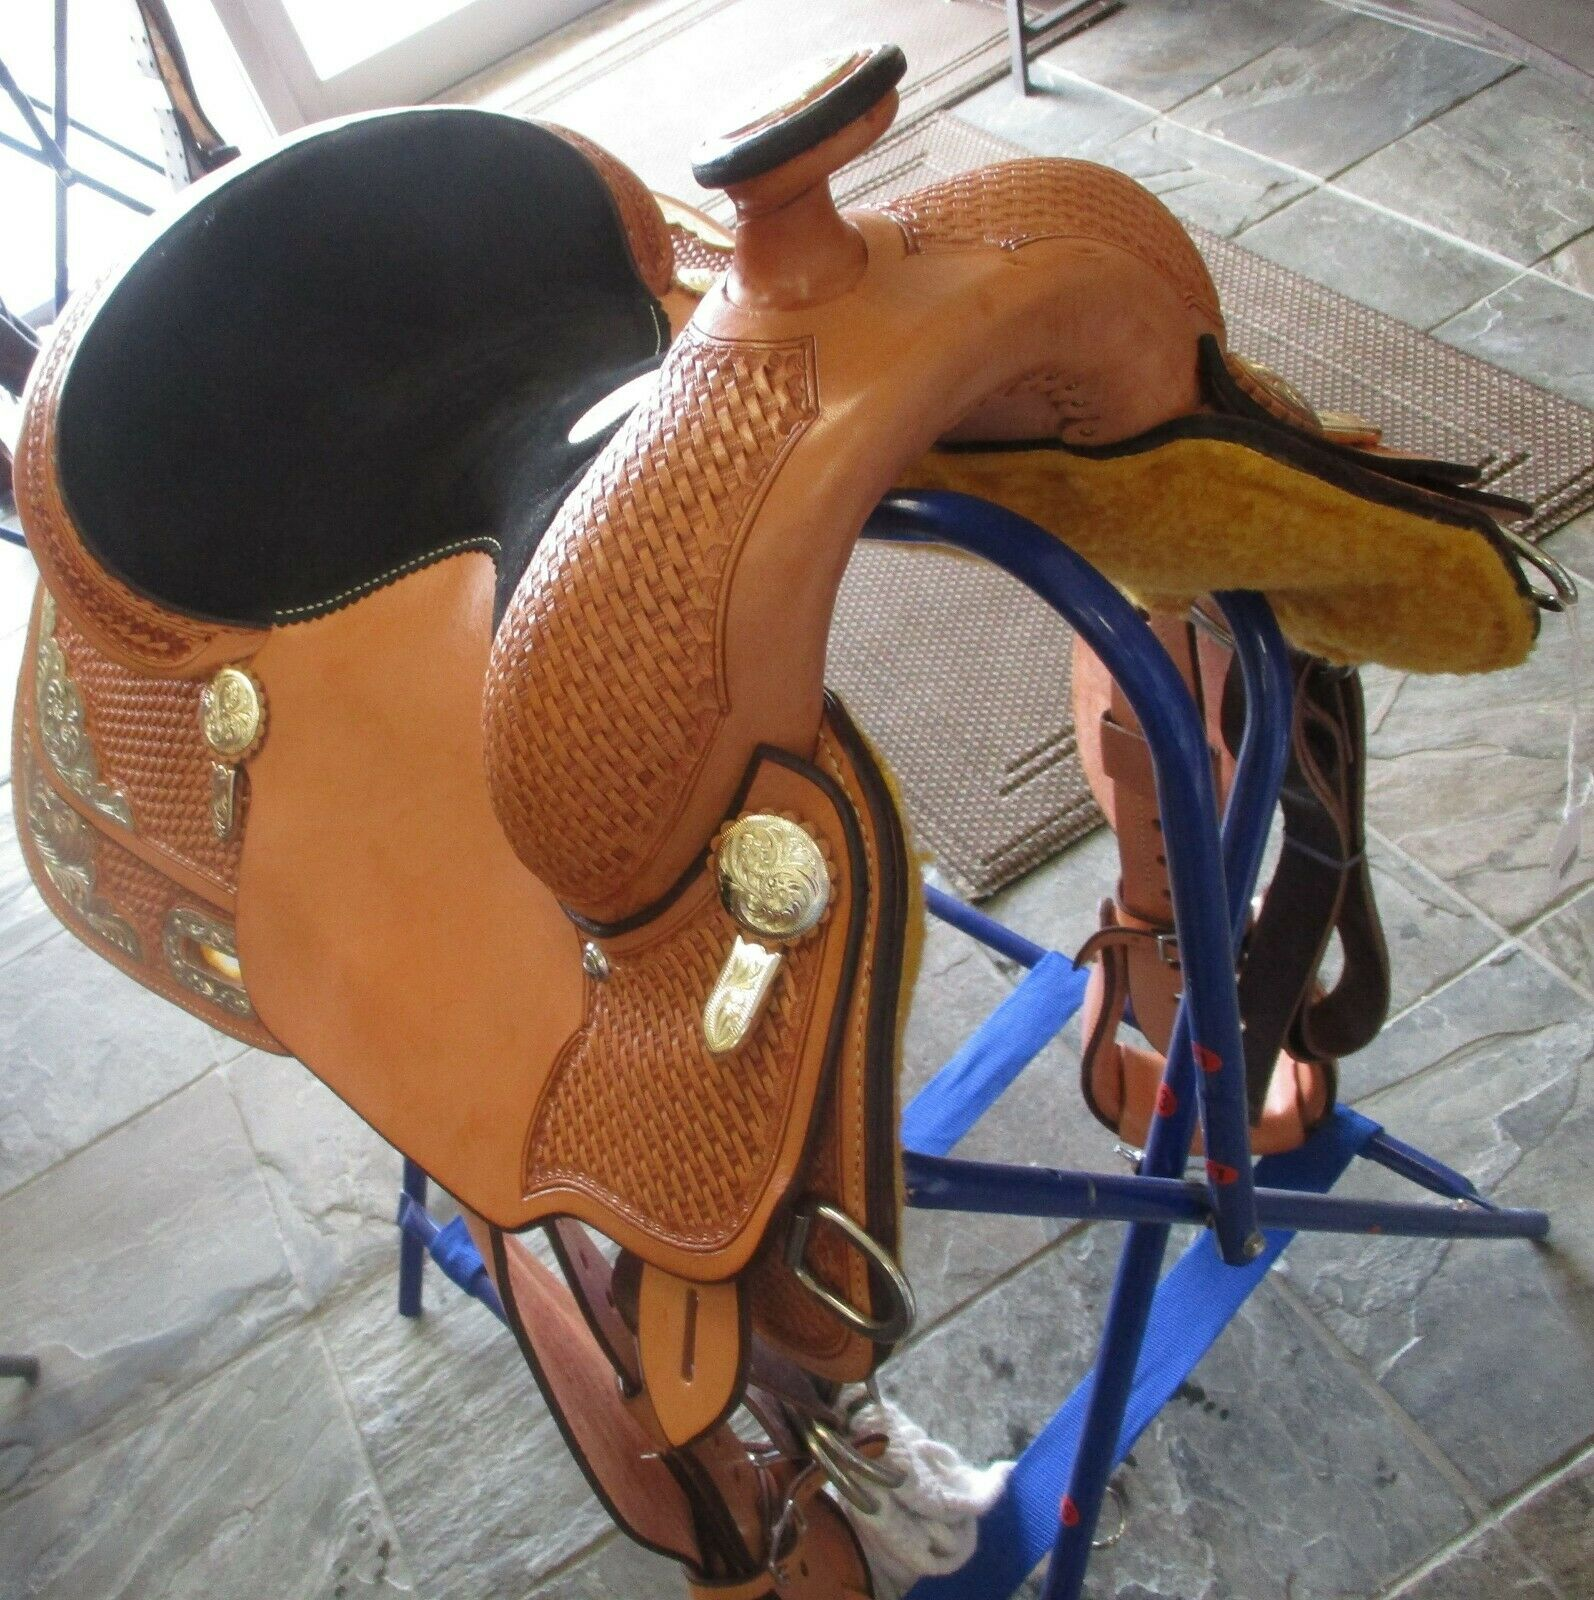 Billy Cook 14 1 2″ Show Saddle New  Light Oil color Model 3298  high quality genuine